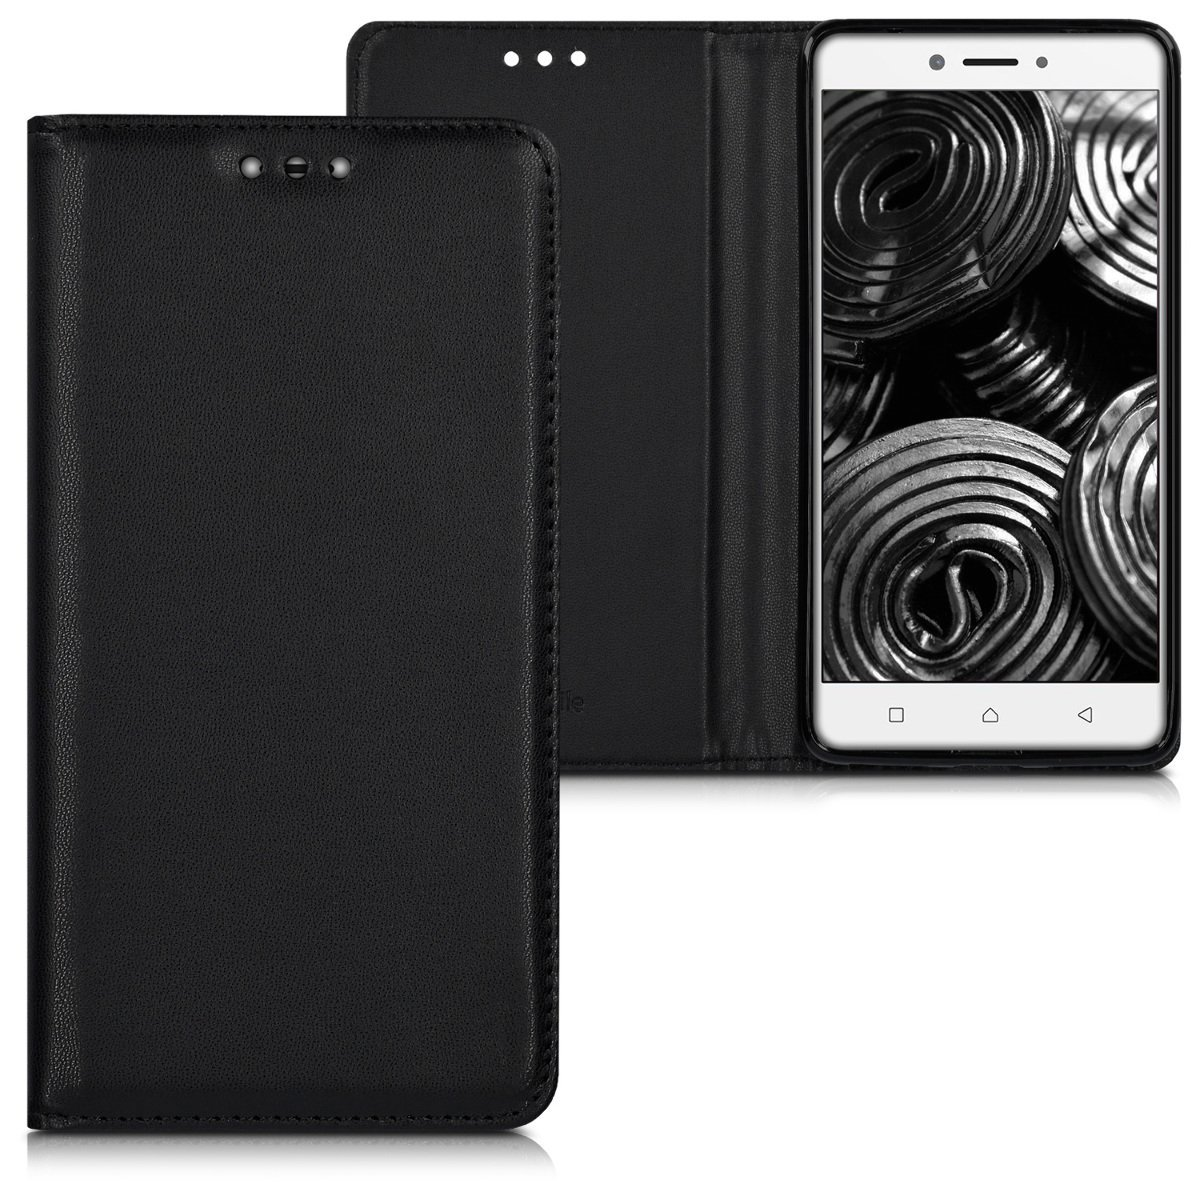 KW Flip Θήκη Lenovo K6 Note - Black (40497.01)